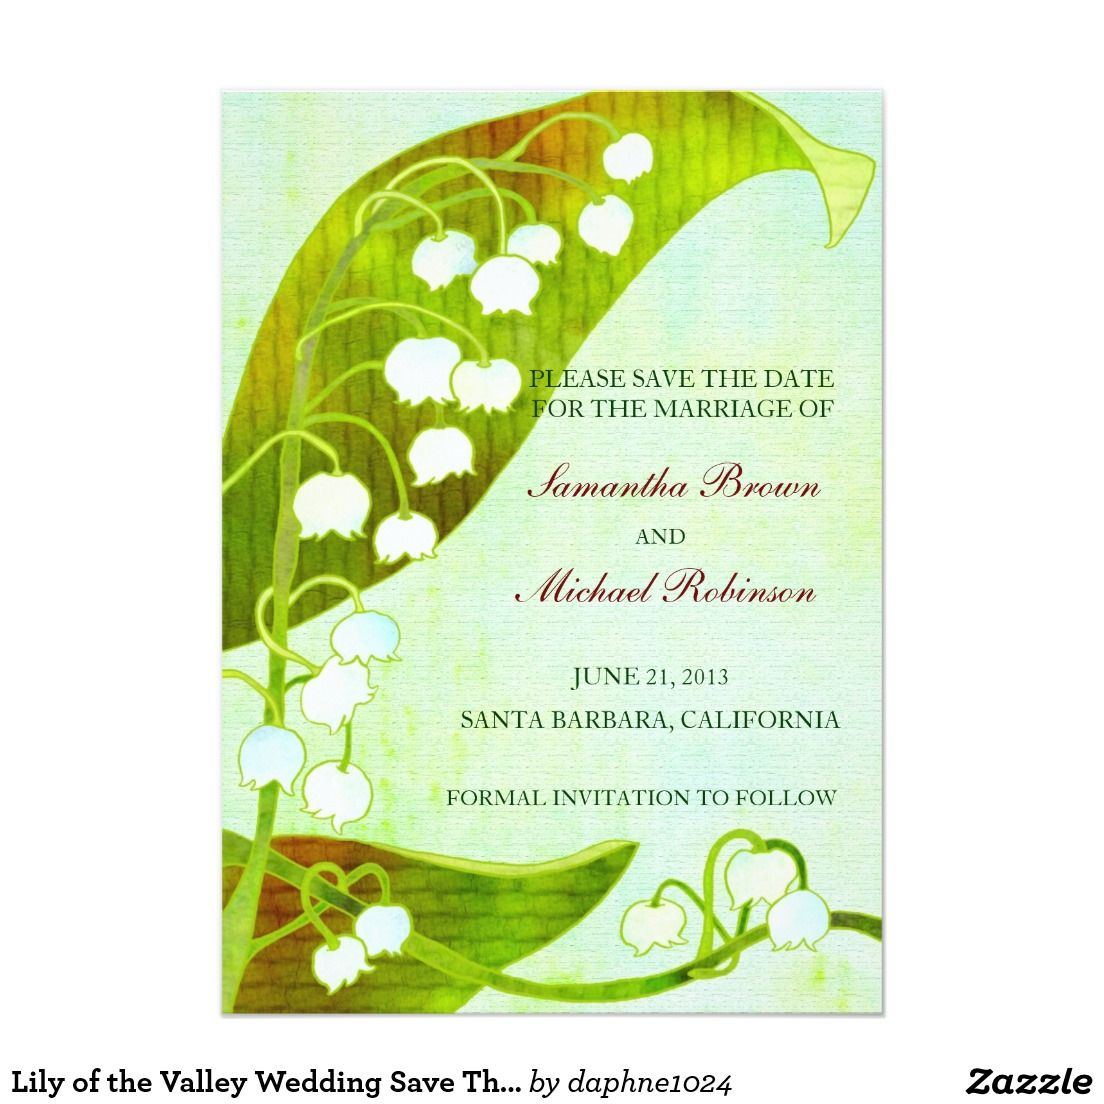 Lily of the Valley Rustic Wedding Save The Date Card | Wedding and ...